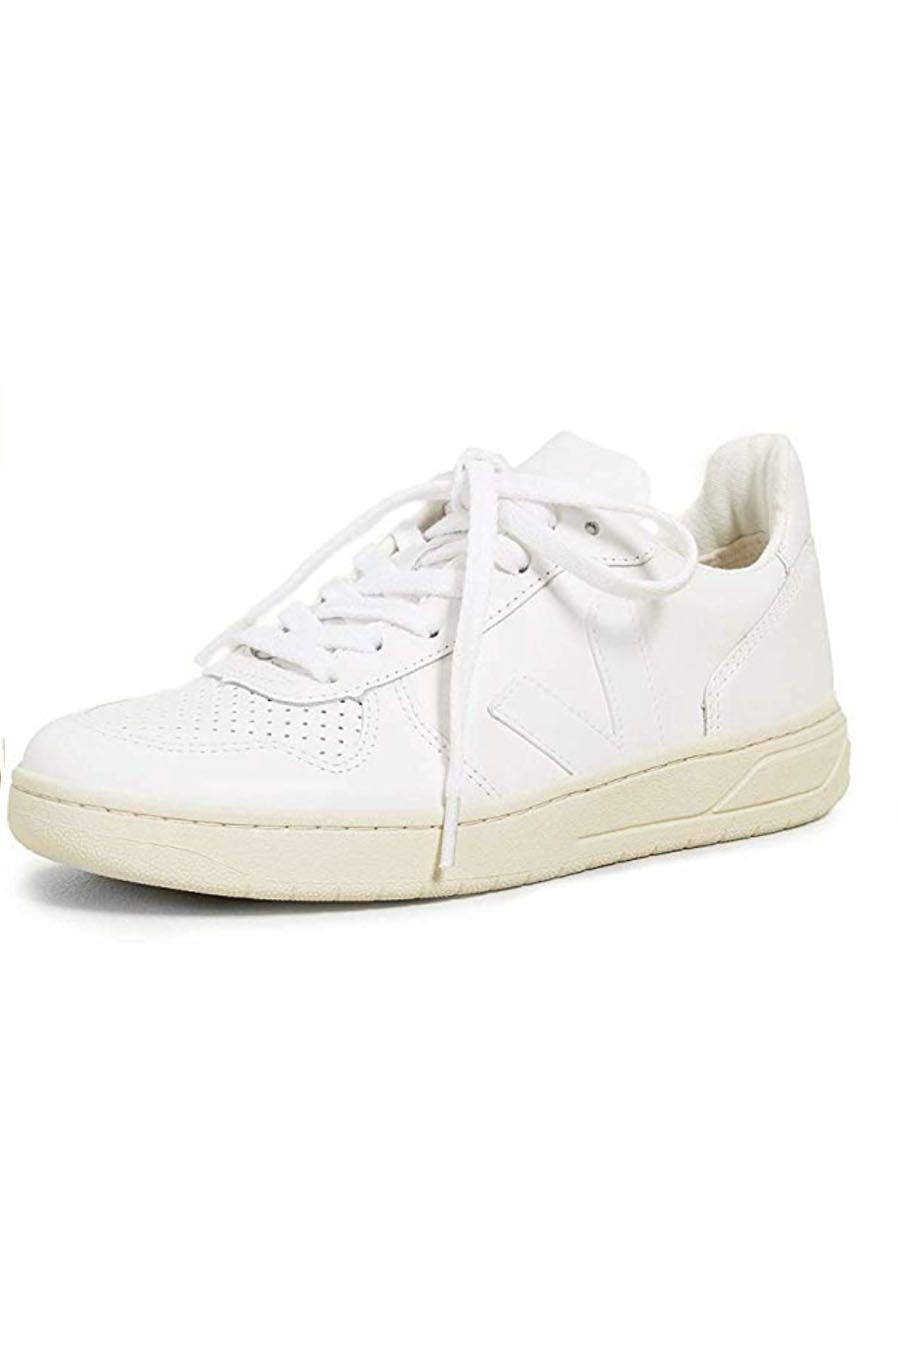 """<p><strong>Veja</strong></p><p>amazon.com</p><p><strong>$150.00</strong></p><p><a href=""""https://www.amazon.com/dp/B01N52XQ32?tag=syn-yahoo-20&ascsubtag=%5Bartid%7C10049.g.36746335%5Bsrc%7Cyahoo-us"""" rel=""""nofollow noopener"""" target=""""_blank"""" data-ylk=""""slk:Shop Now"""" class=""""link rapid-noclick-resp"""">Shop Now</a></p><p>I must confess, I purchased these shoes right after including it into this listicle. Sustainable shoe-brand Veja has been making a name for itself over the last two years, and customers are loving their comfort, style, and ethical business practices.</p>"""